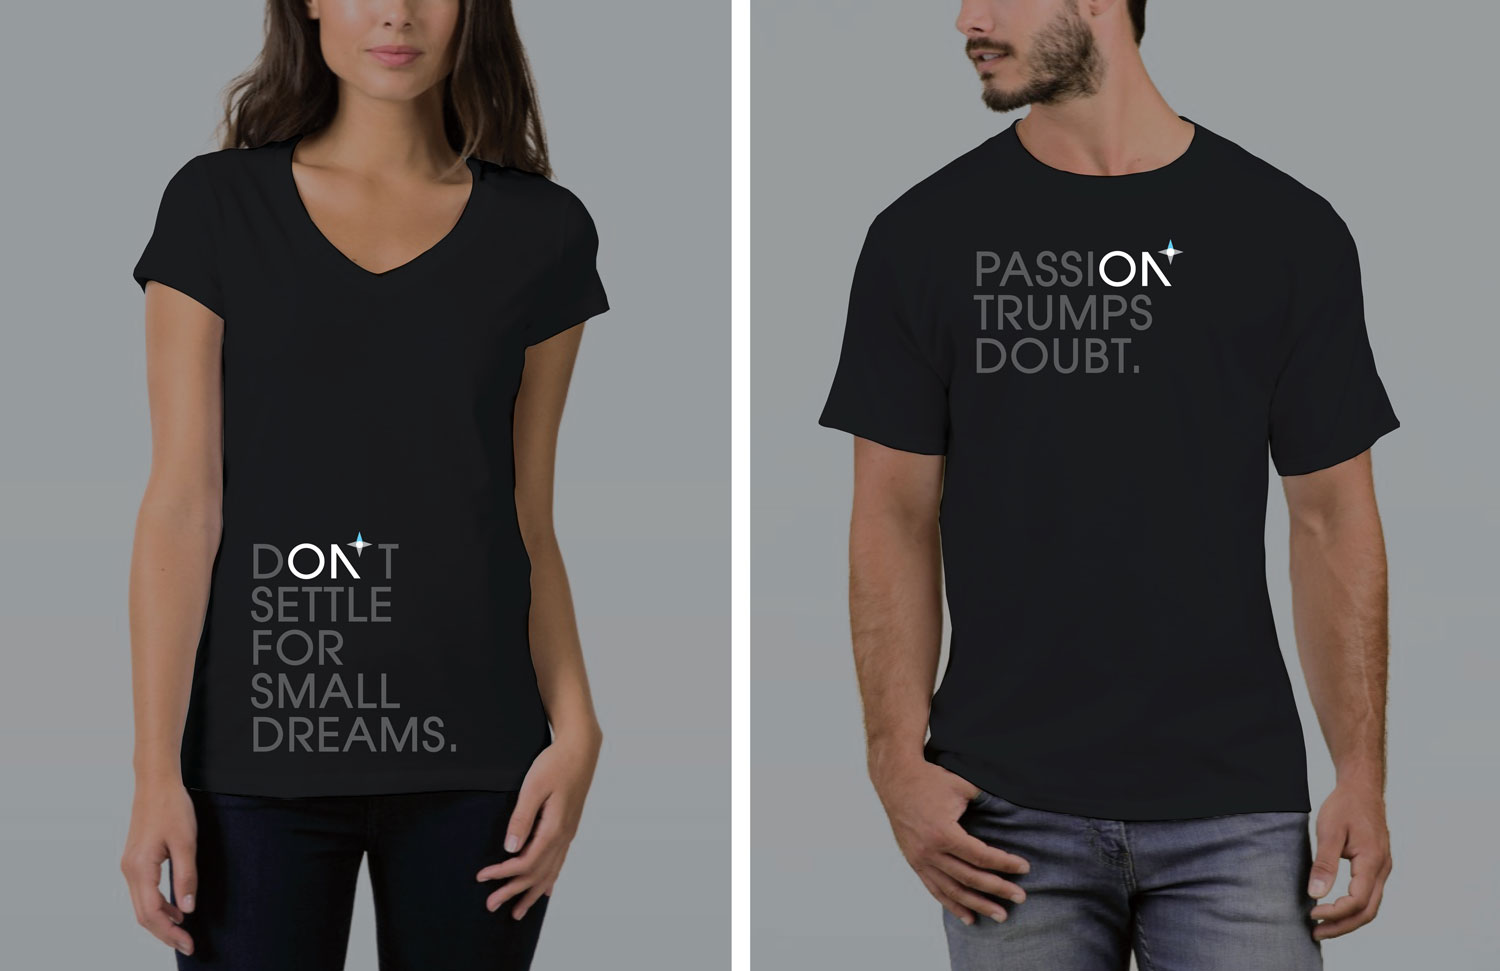 A series of inspiring promotional t-shirts